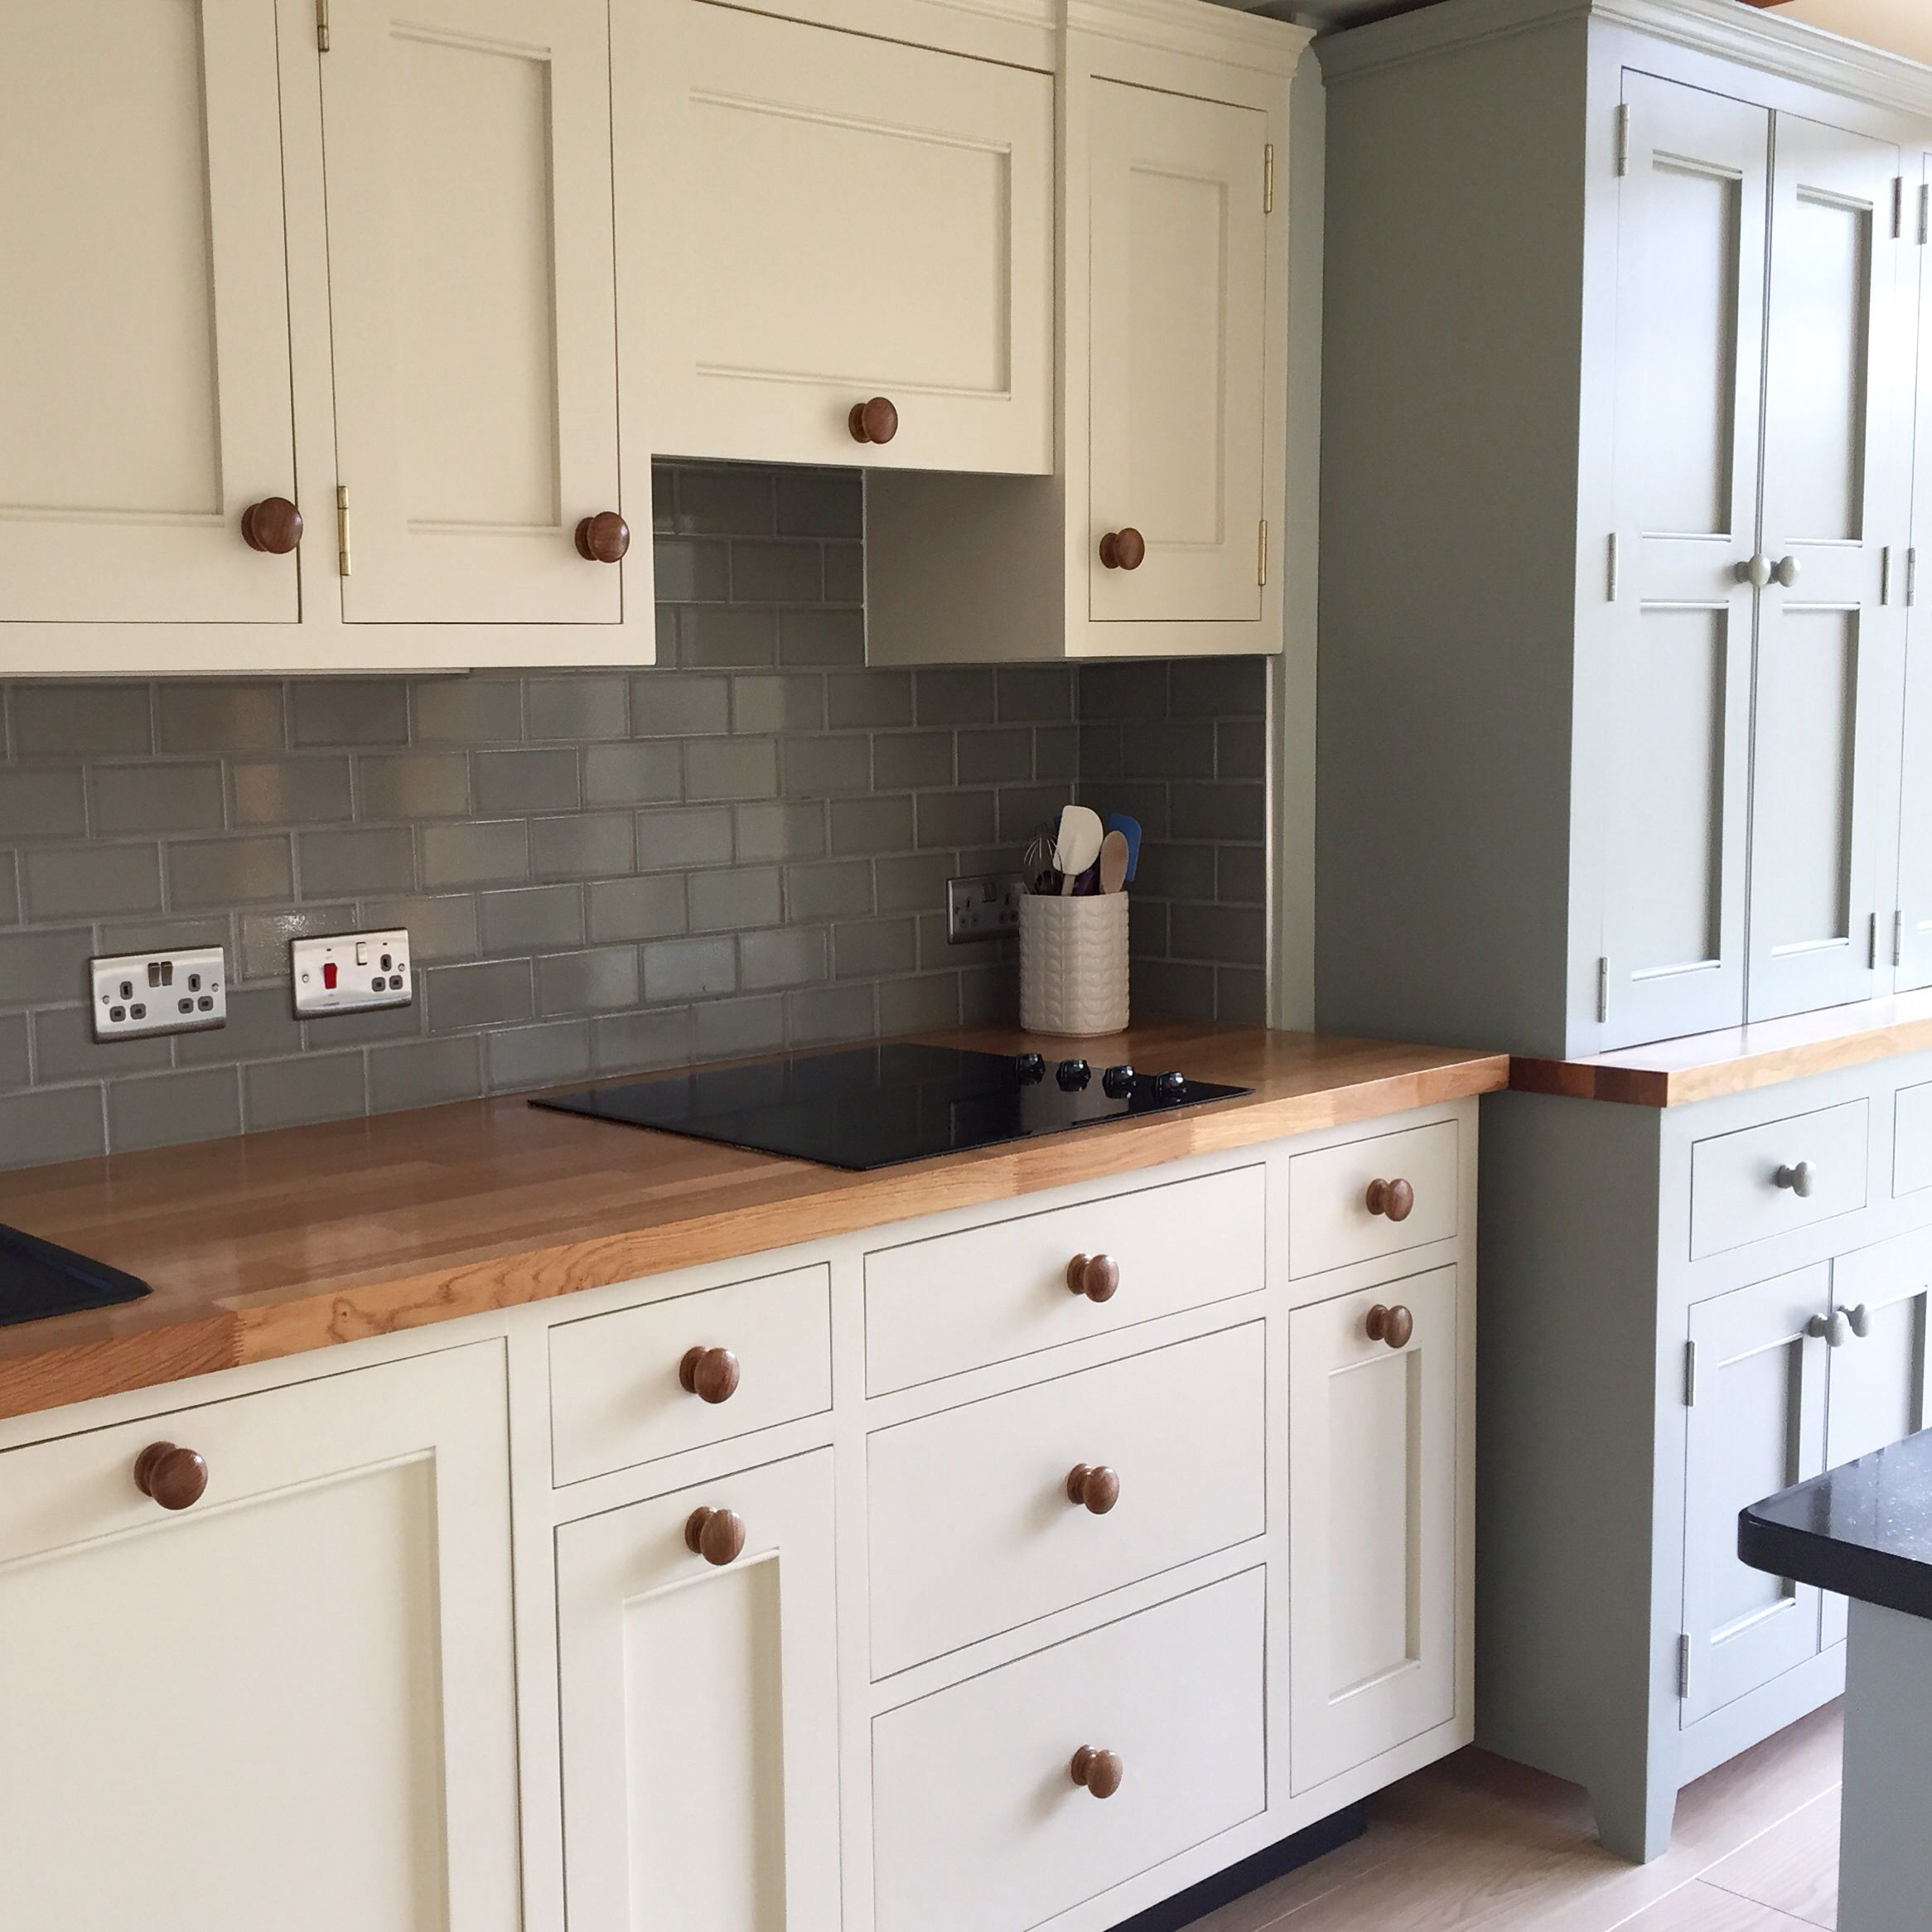 Respray Kitchen Cabinets Kitchen By Ross Trent Cabinet Maker Painted In Farrow Ball